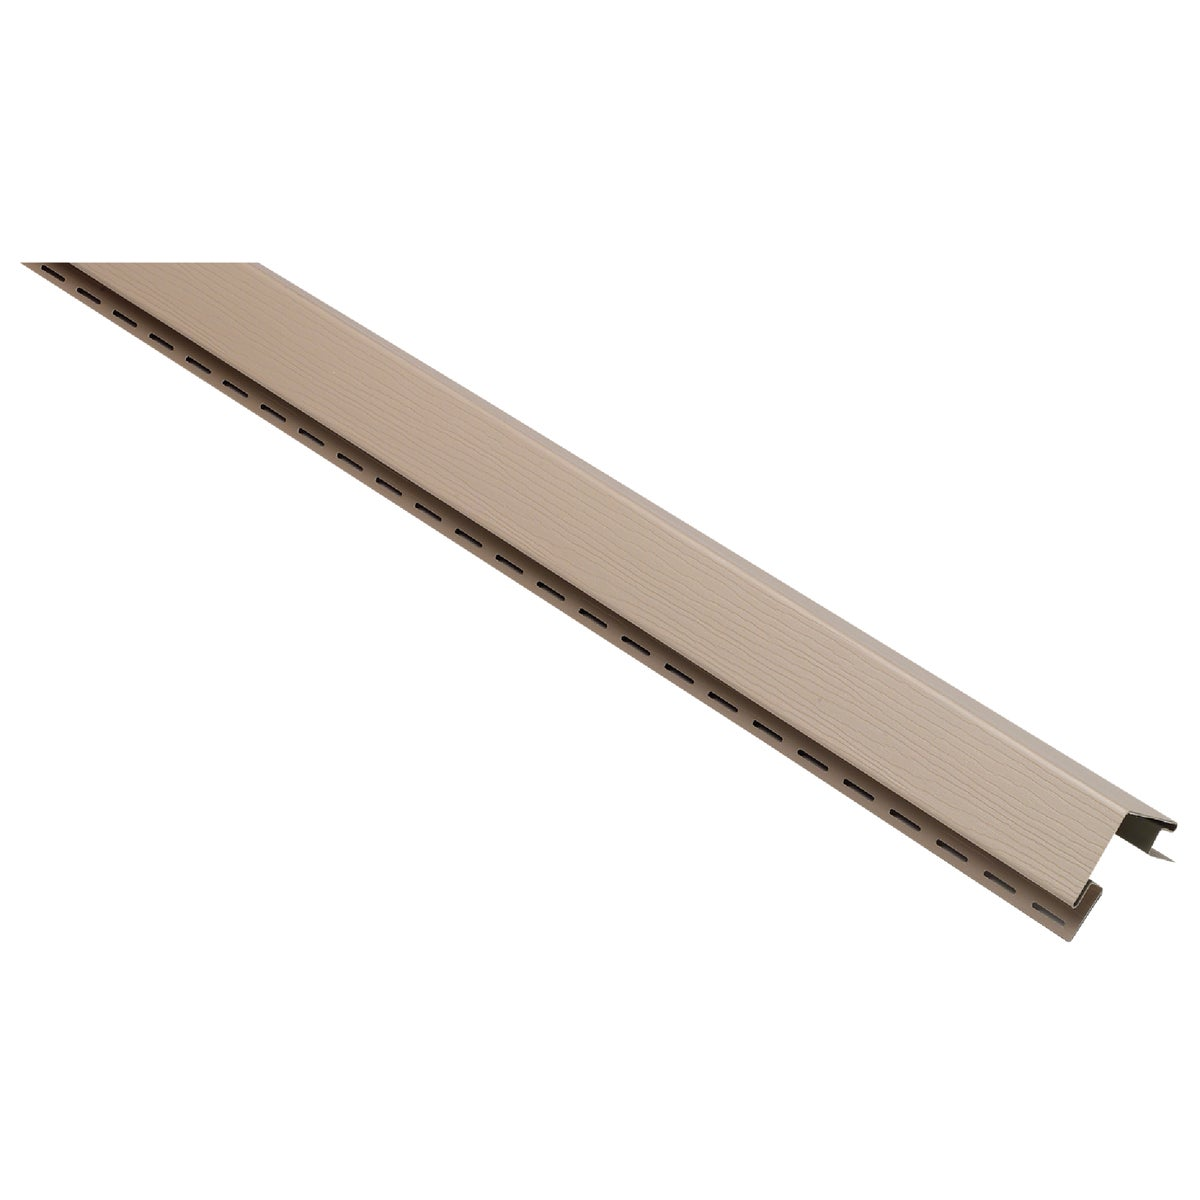 "3/4"" TAN OUTSIDE CORNER - 4002284 by Bluelinx"